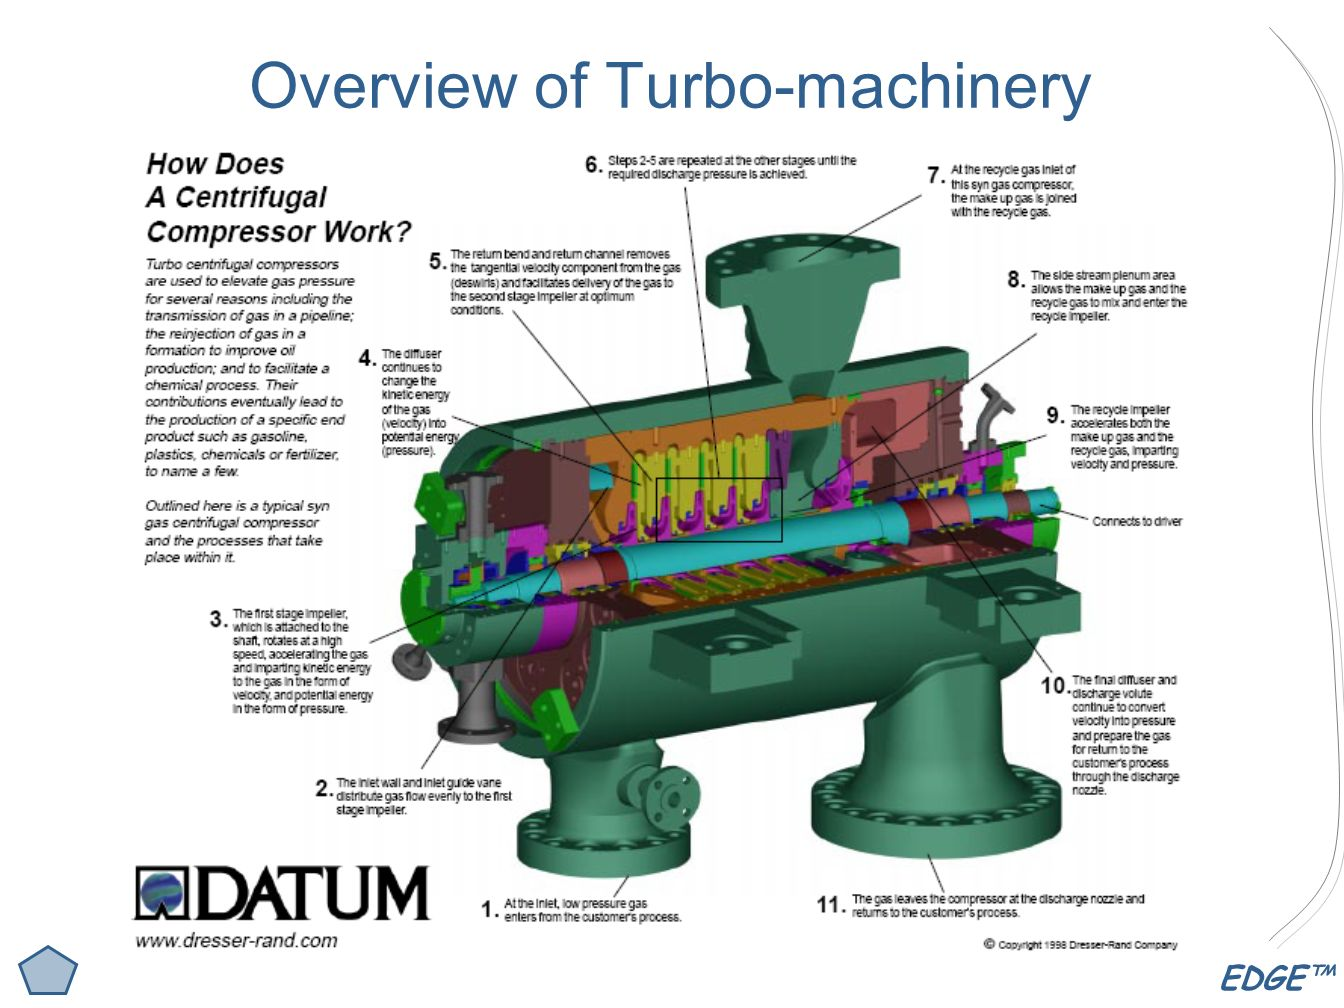 Edge Concept Level Project Plan P08452 Fault Detection And How Does A Turbo Work Diagram 4 Overview Of Machinery